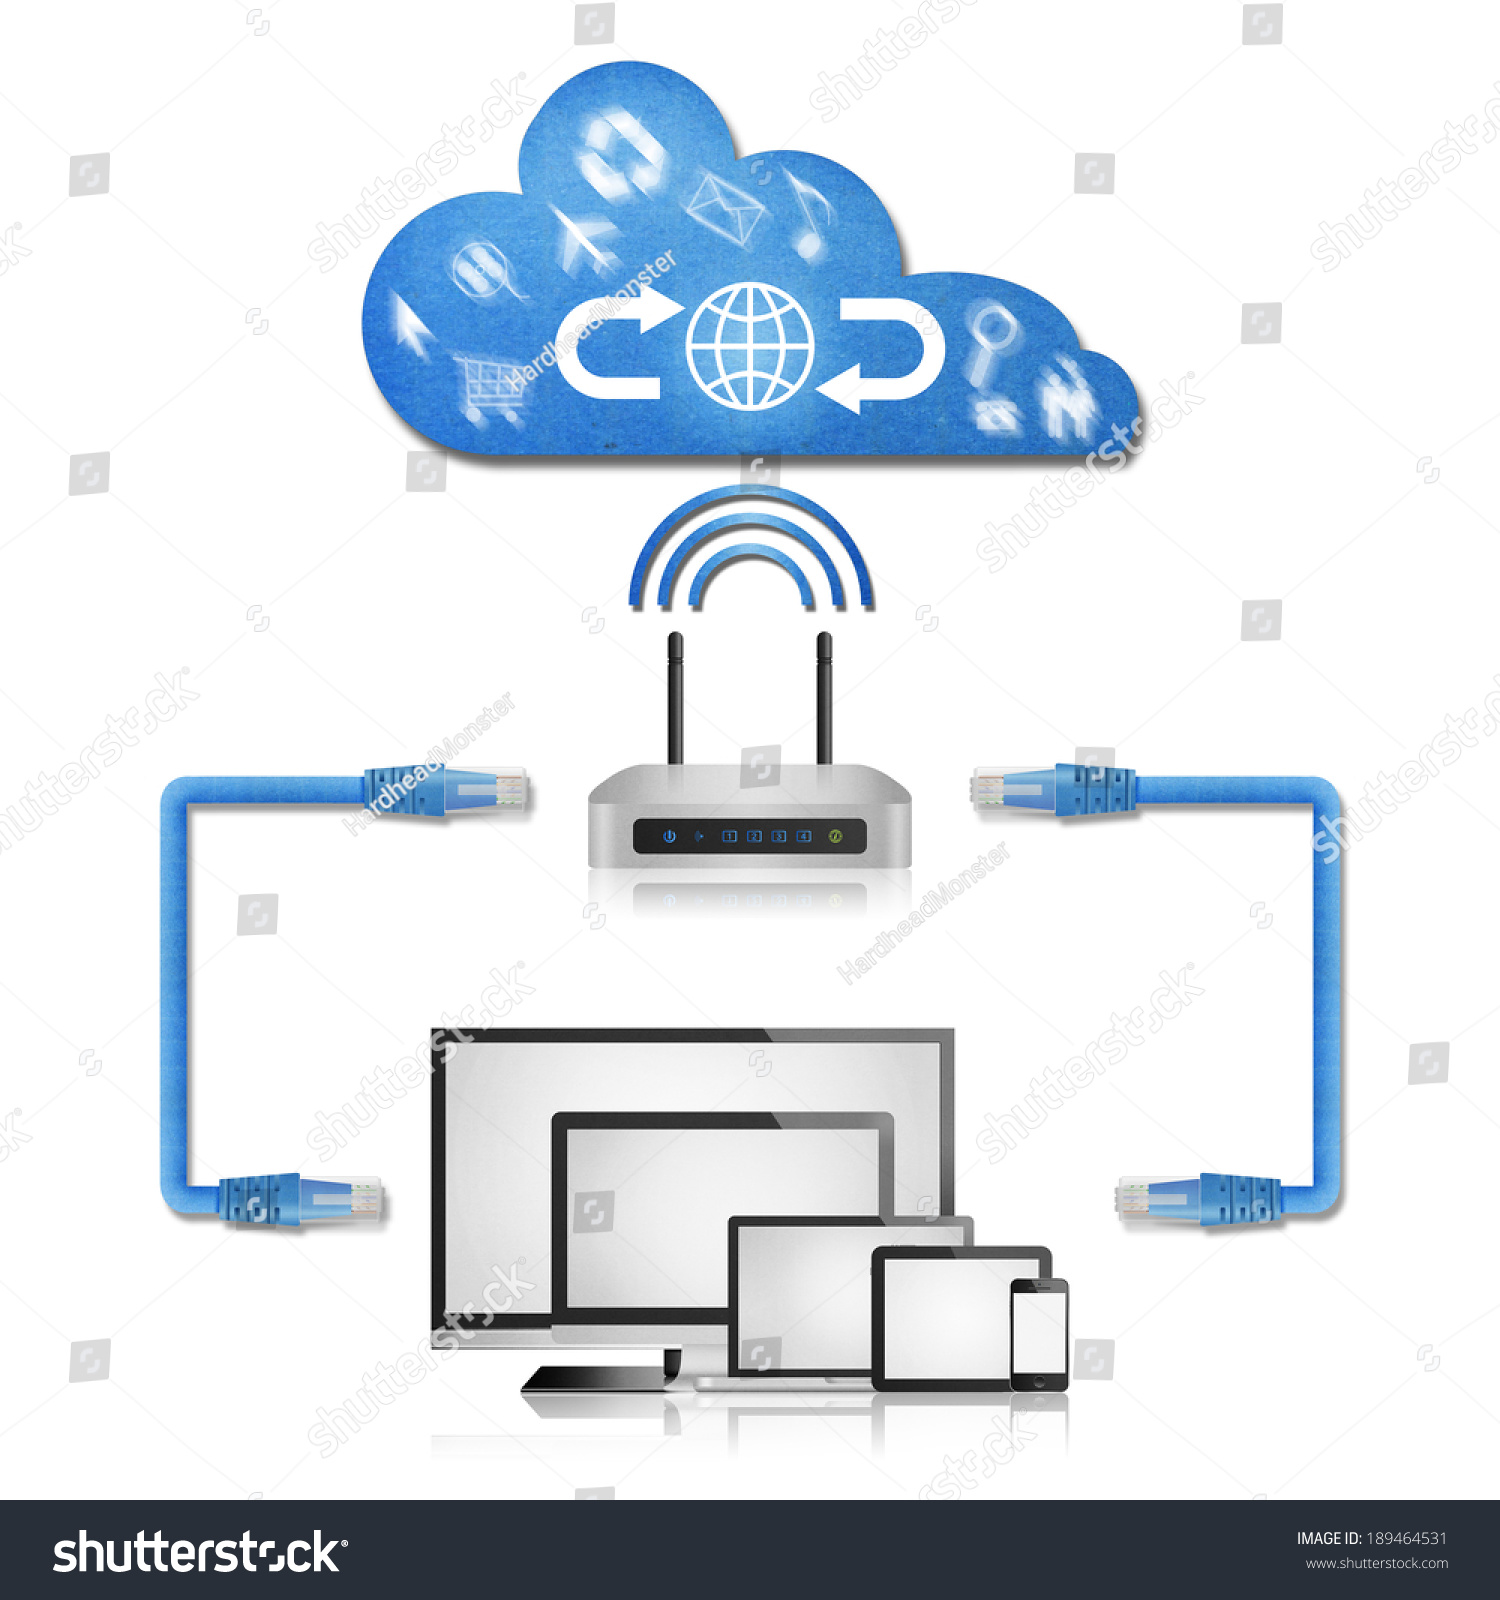 Home Wireless Network Diagram Wifi Detailed Schematic Diagrams Isolated Paper Cut Stock Illustration 189464531 Computer